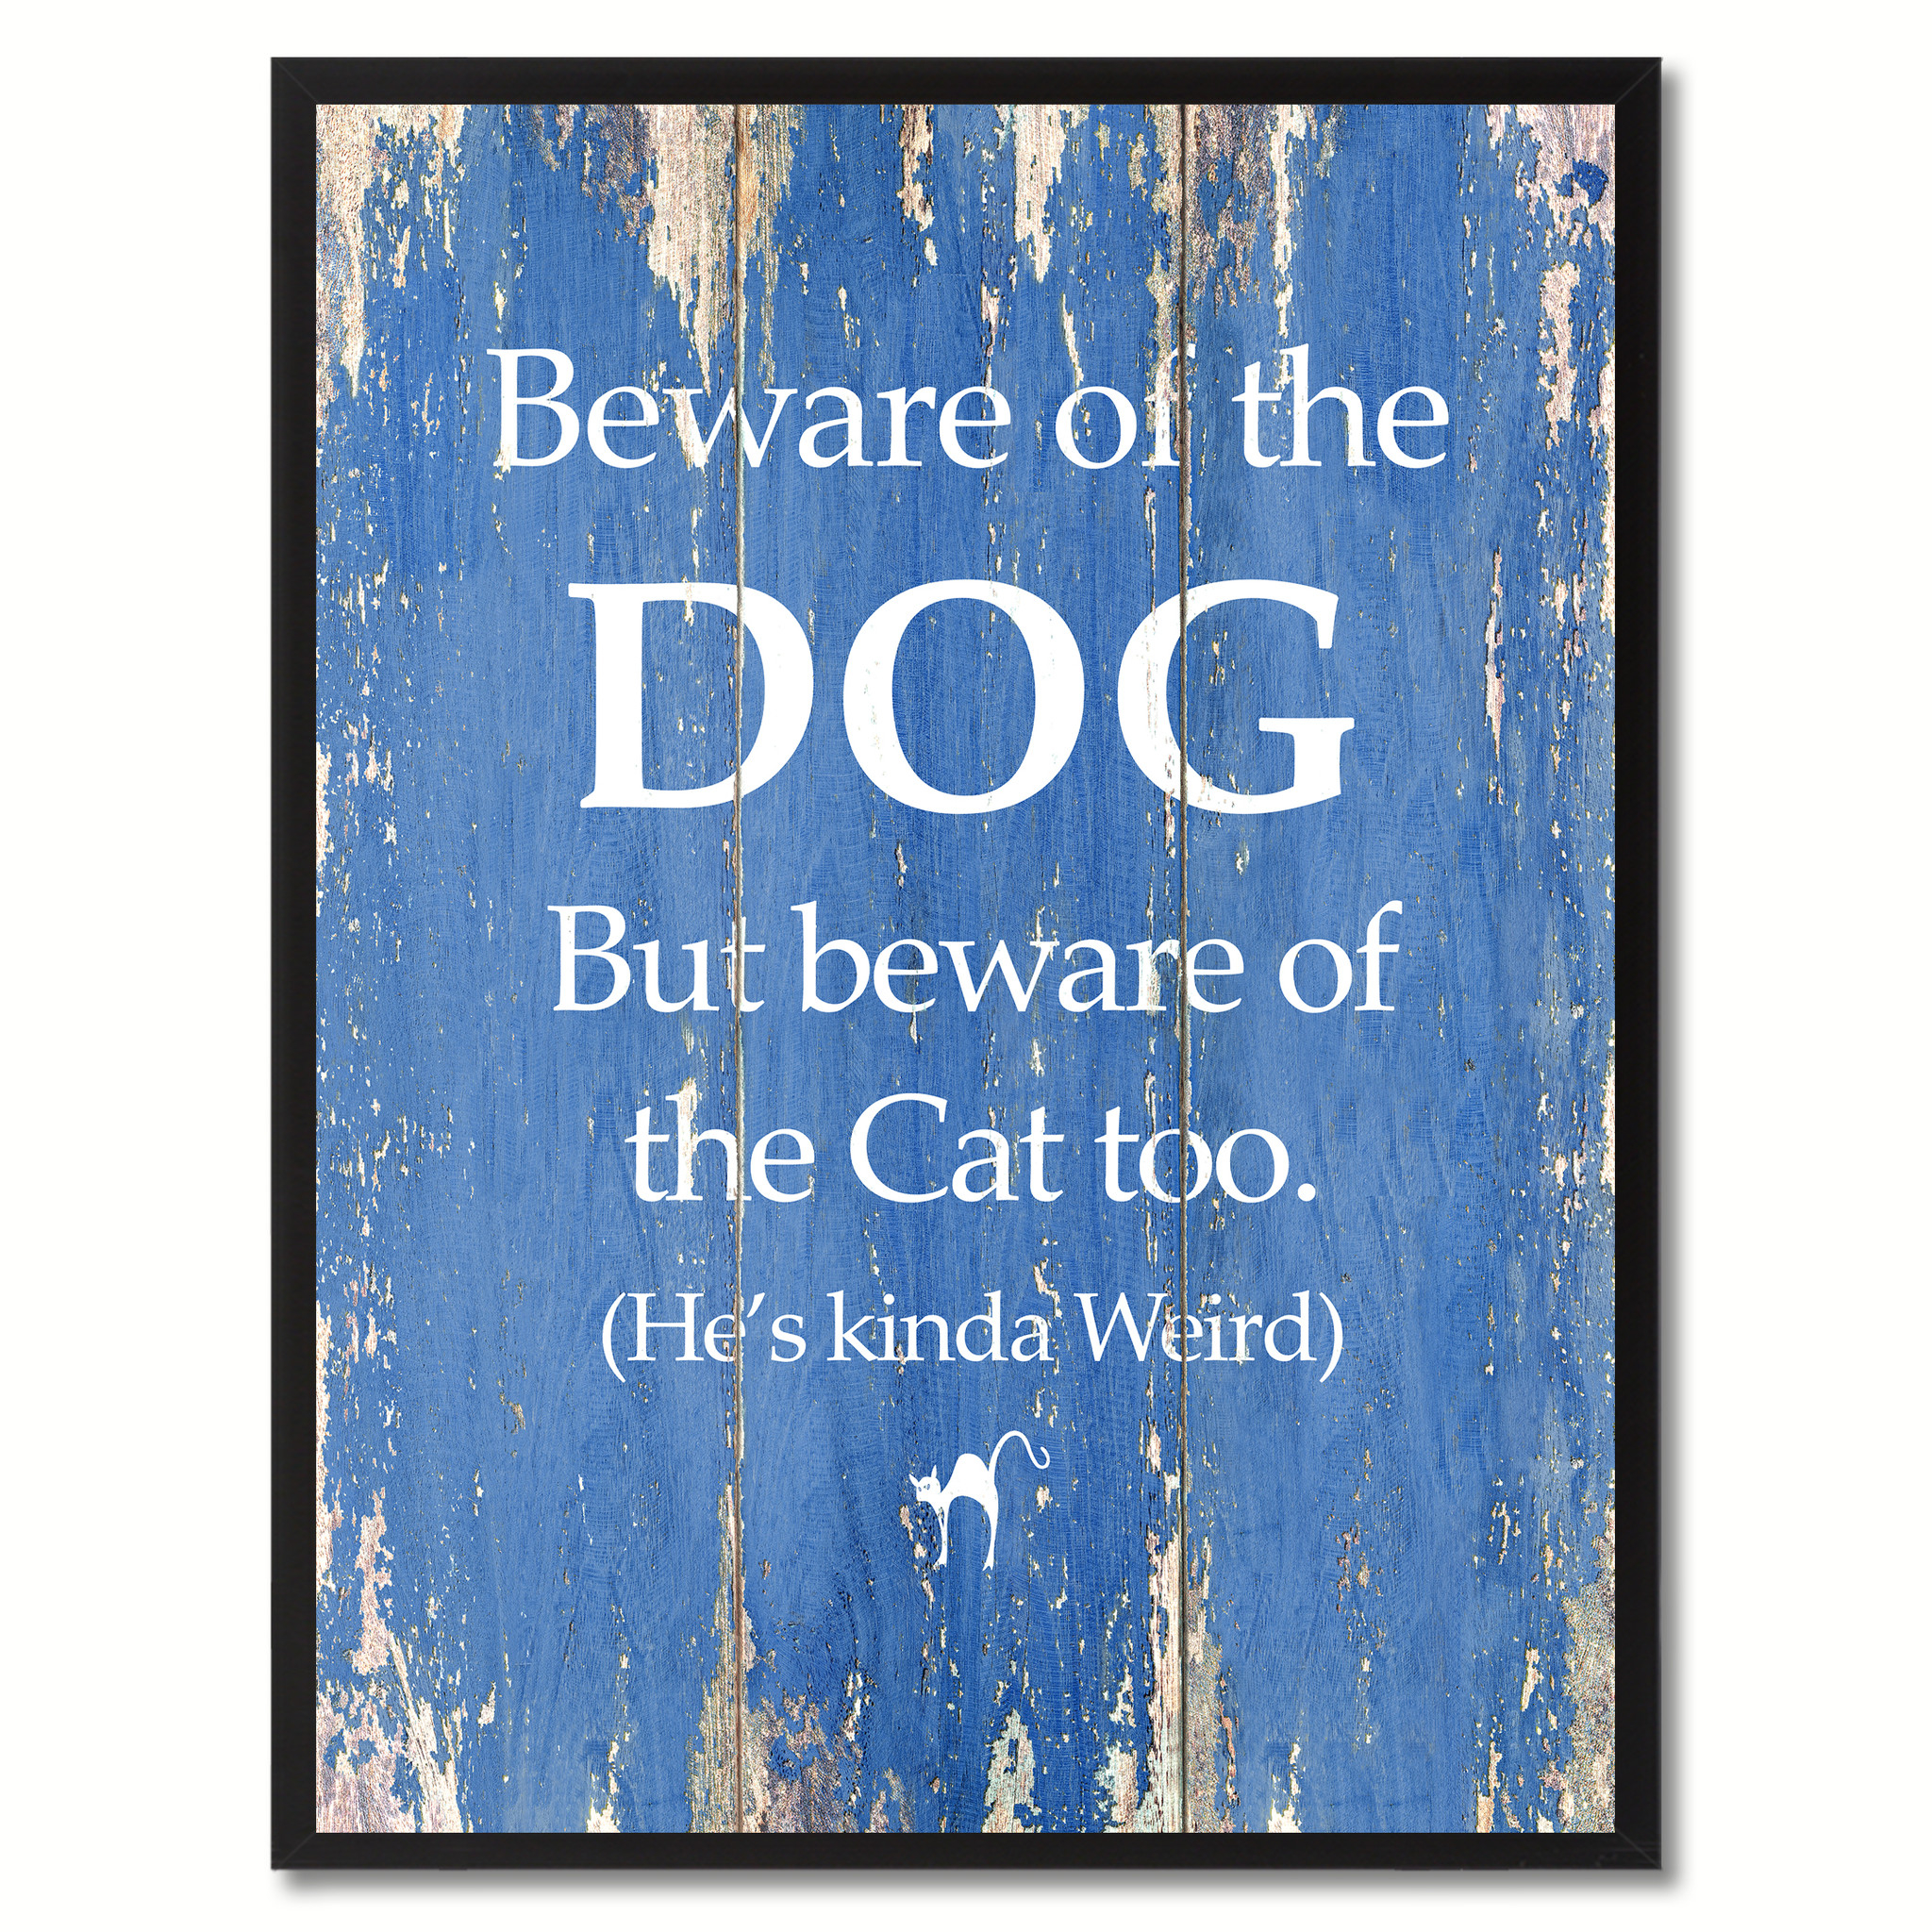 """Beware Of The Dog But Beware Of The Cat Too Funny Quote Saying Canvas Print with Picture Frame Gifts Home Decor Wall Art 121089 - 7\""""x9\"""" 57f6c83de2246165150dd5fa"""